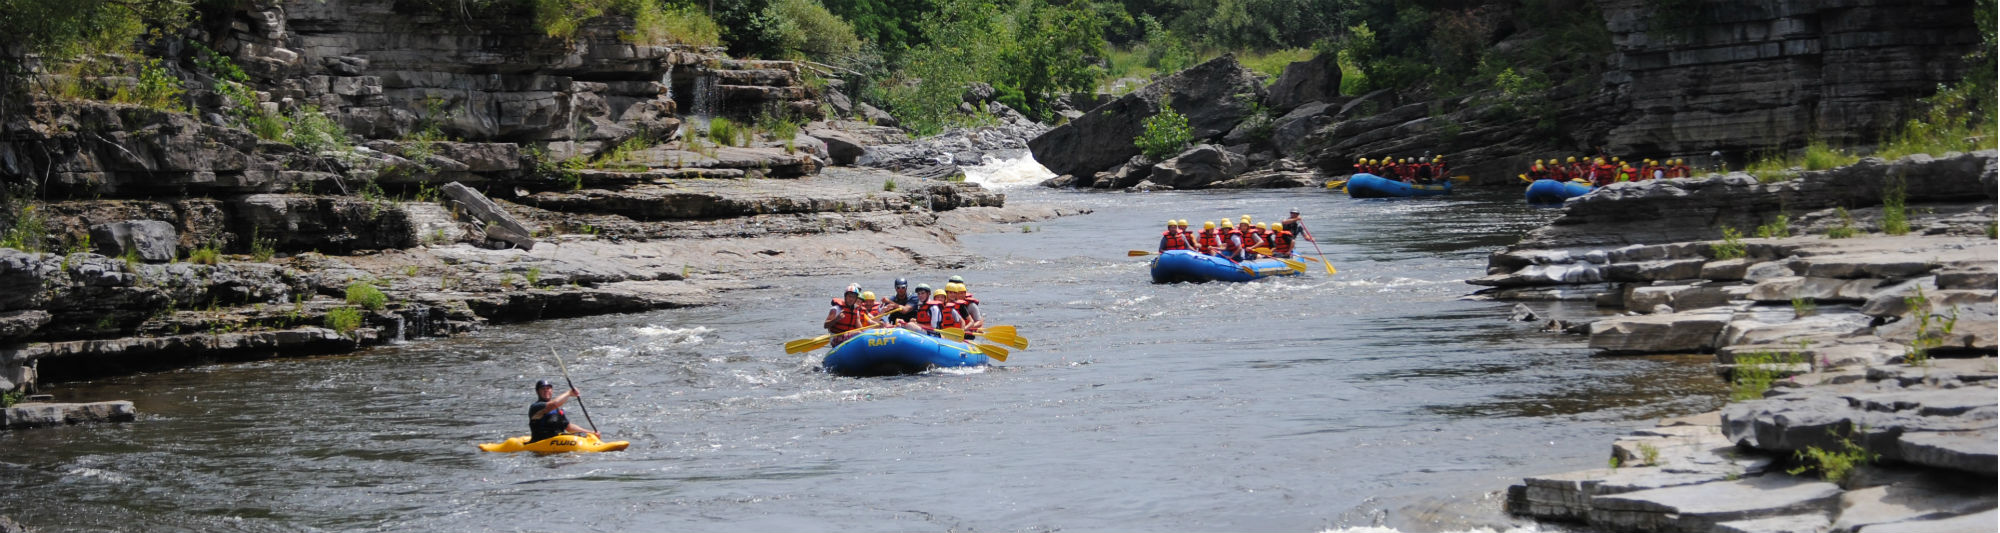 White water rafting is not a water park ride!